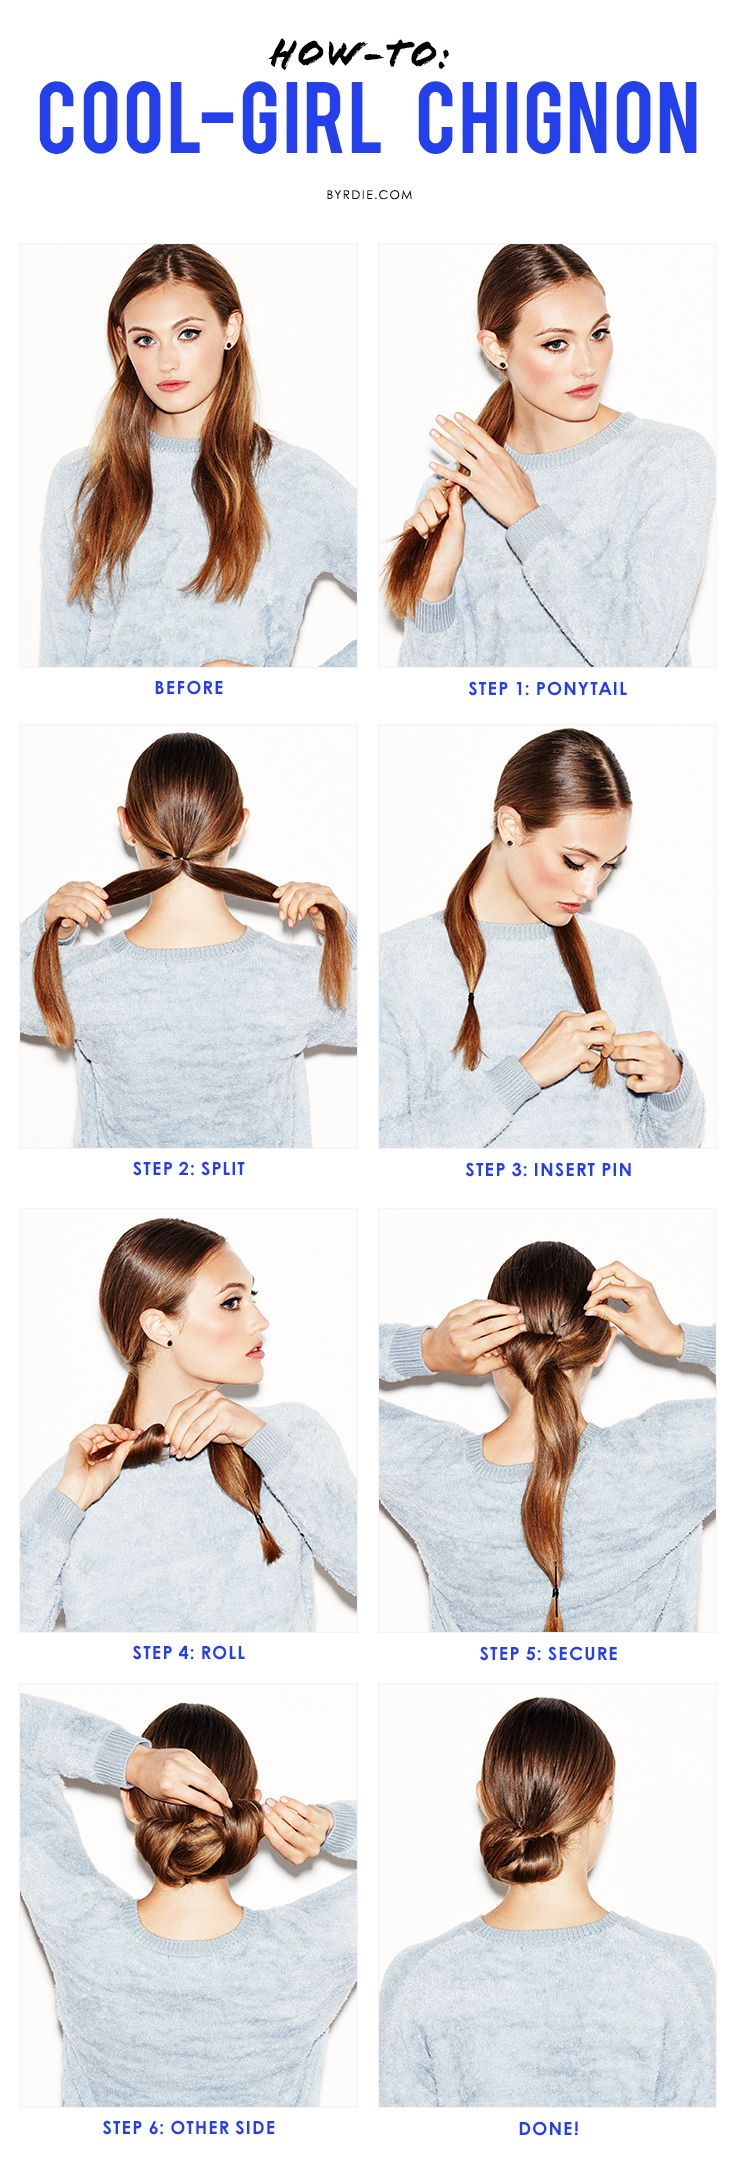 A step-by-step guide to mastering the low chignon like a cool girl.